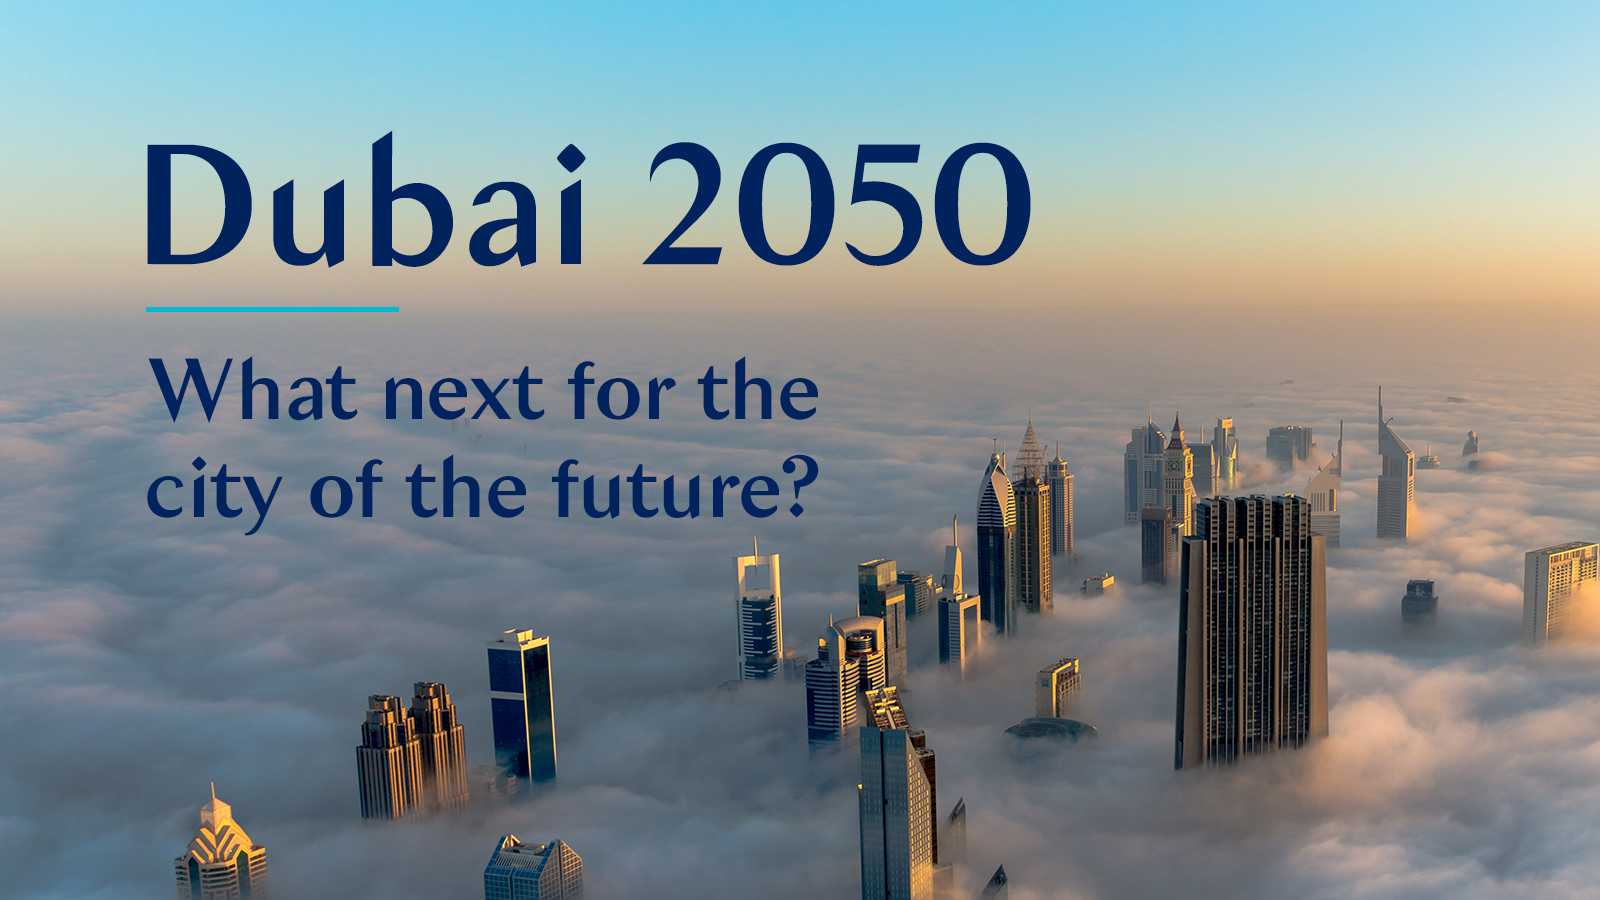 Dubai 2050: What next for the city of the future?